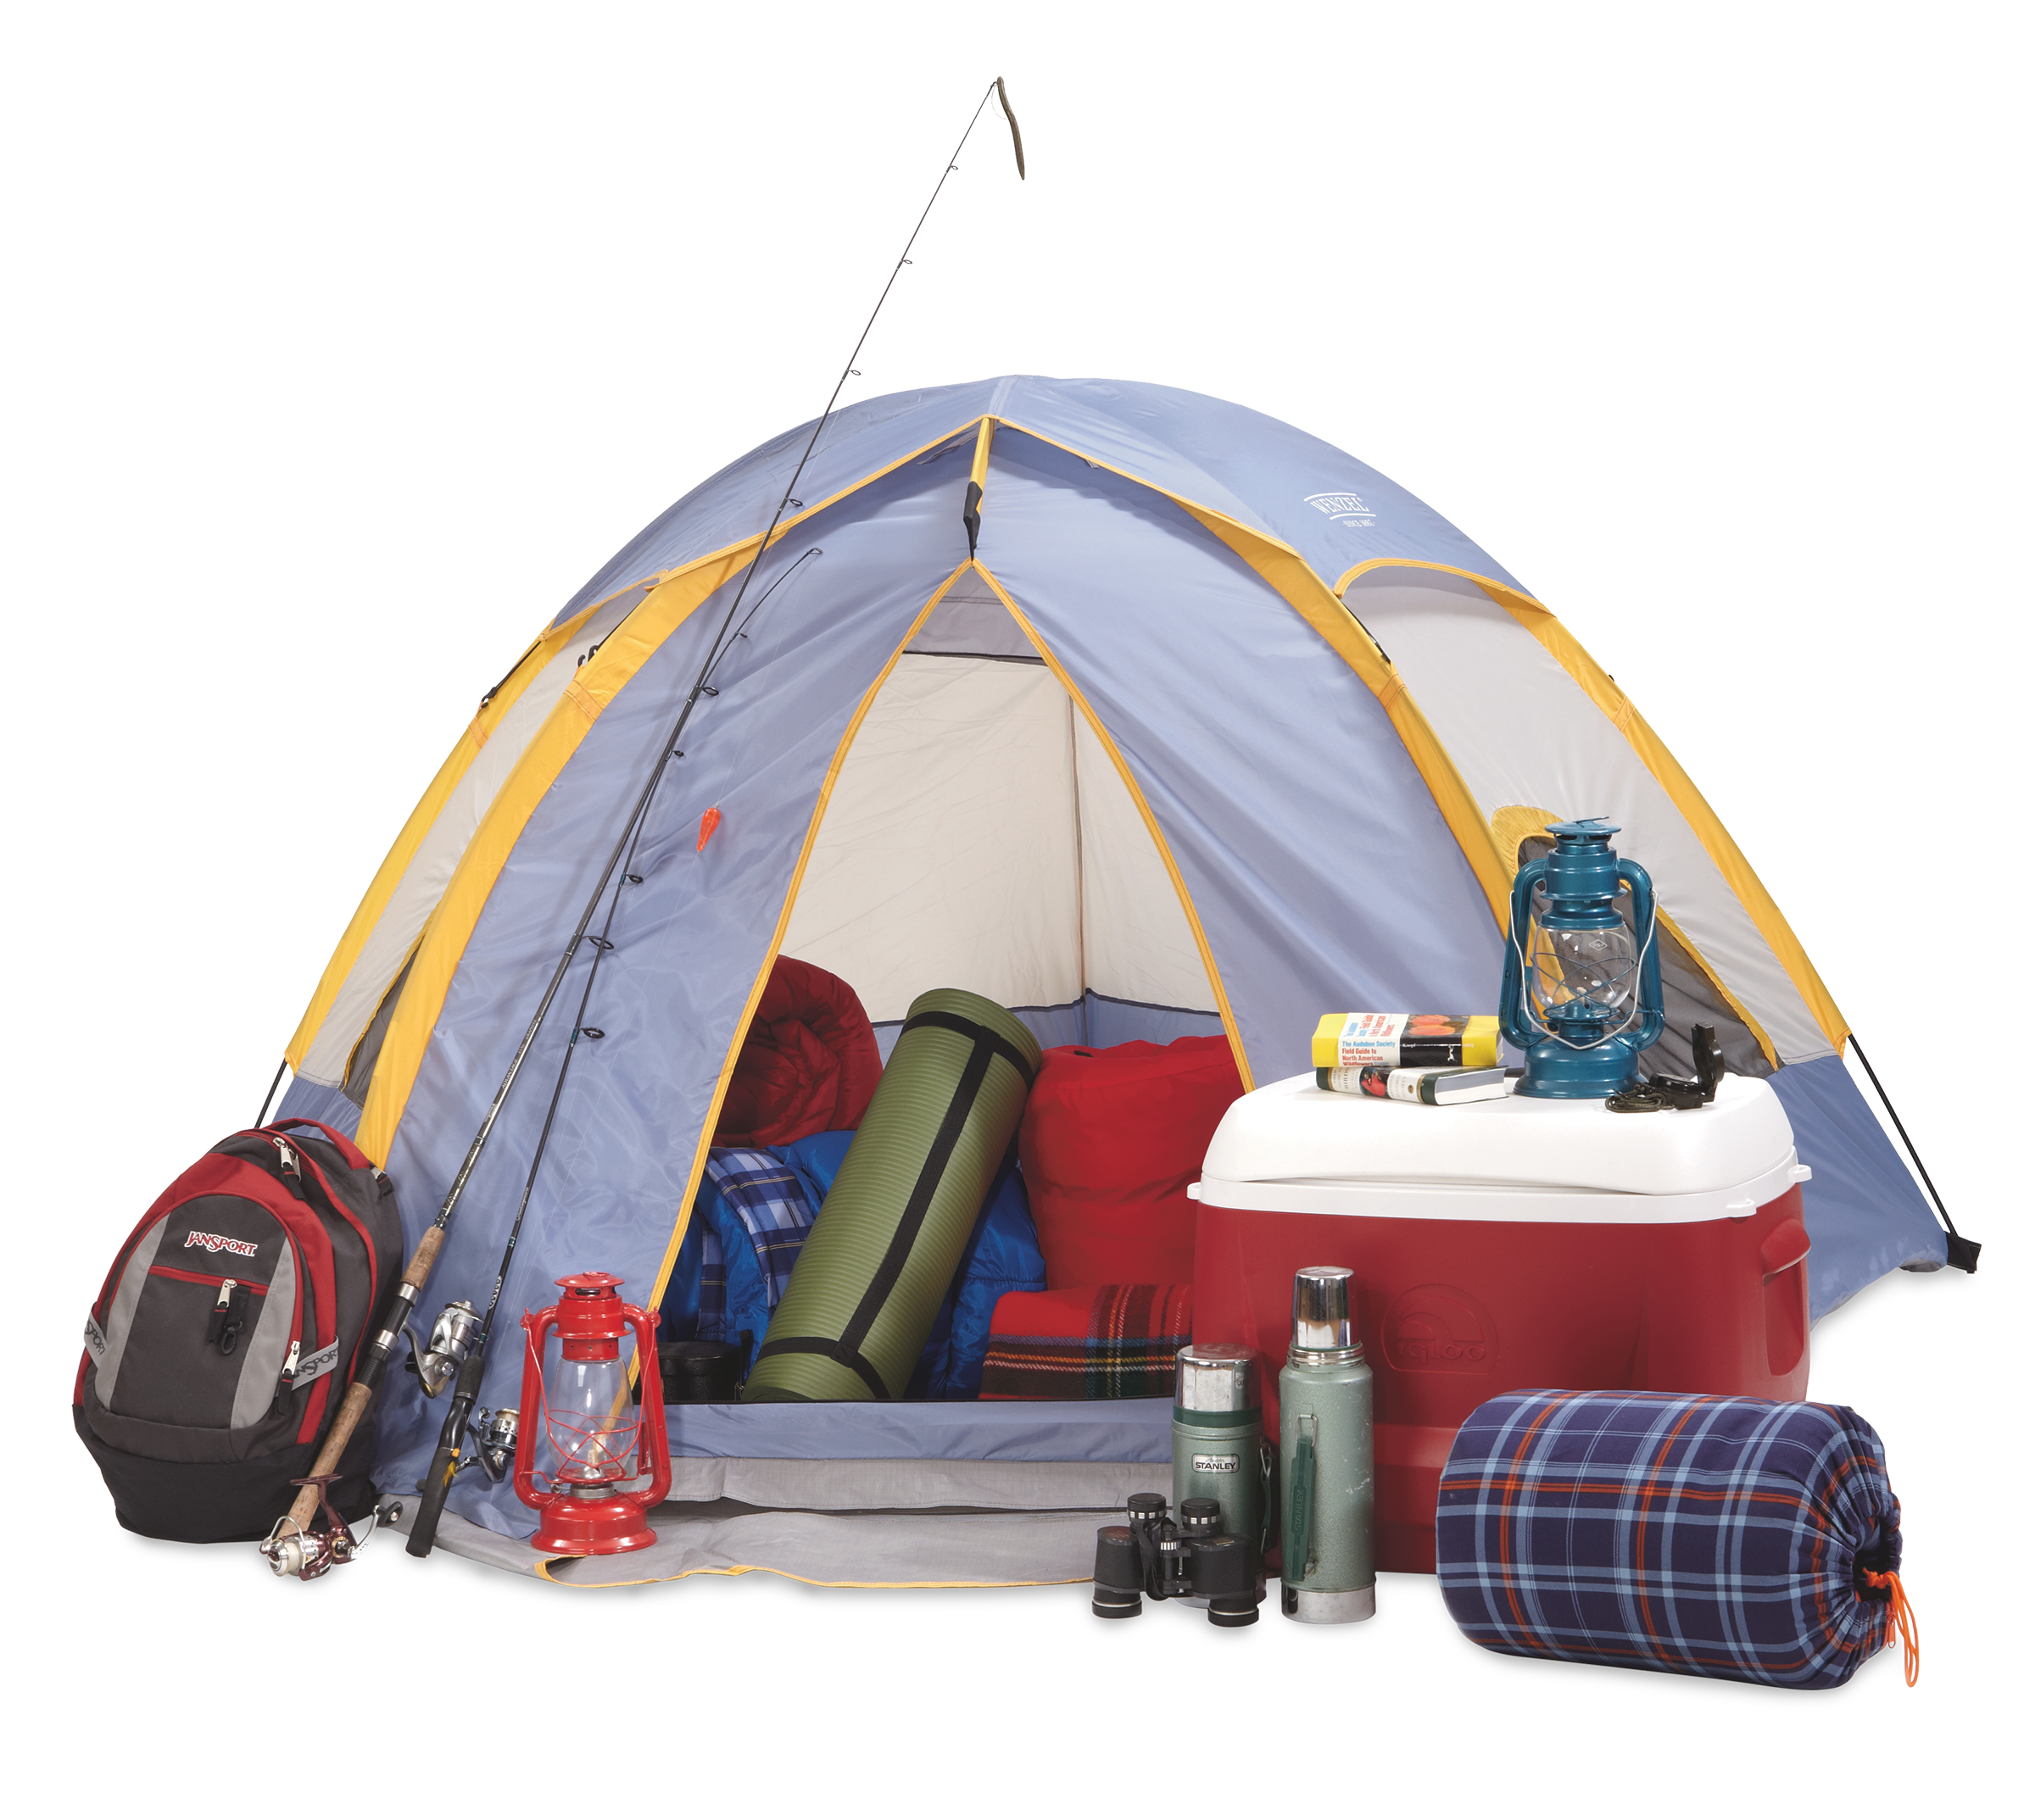 Campsite Camping Png image #33986